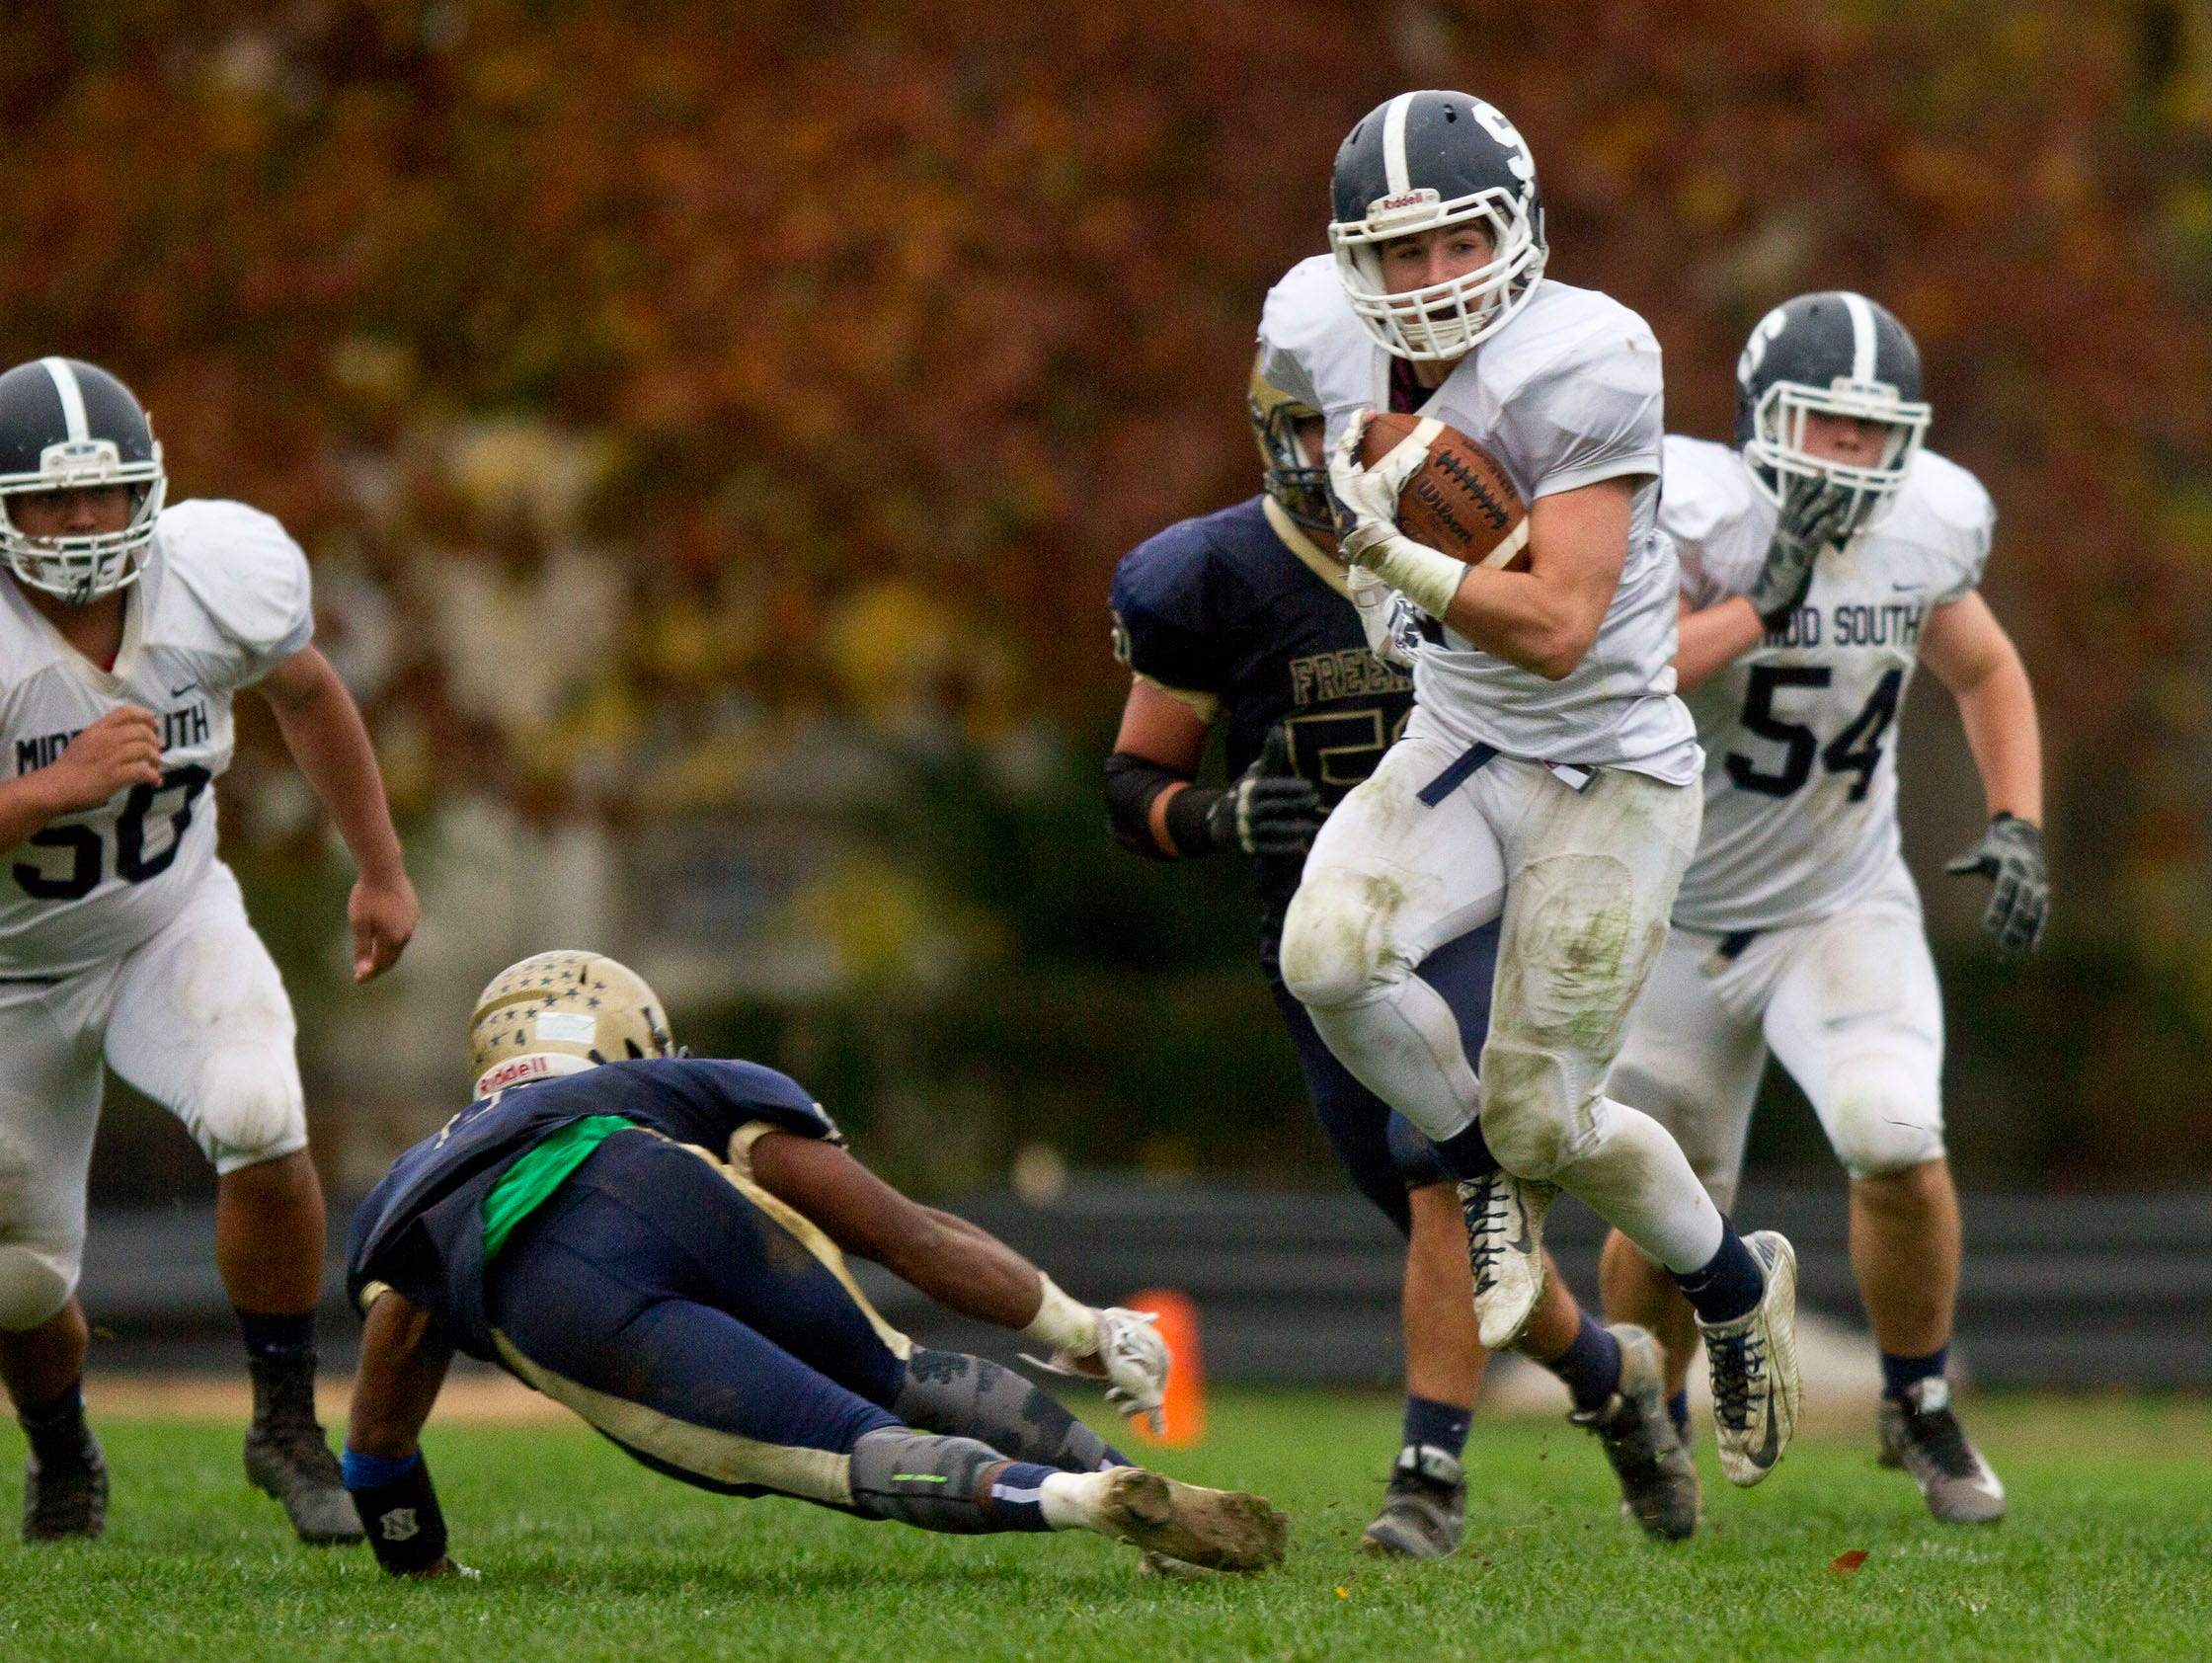 Middletown South's Cole Rogers gains yardage on the ground. Middletown South at Freehold football. Freehold, NJ Saturday, November 7, 2015 @dhoodhood